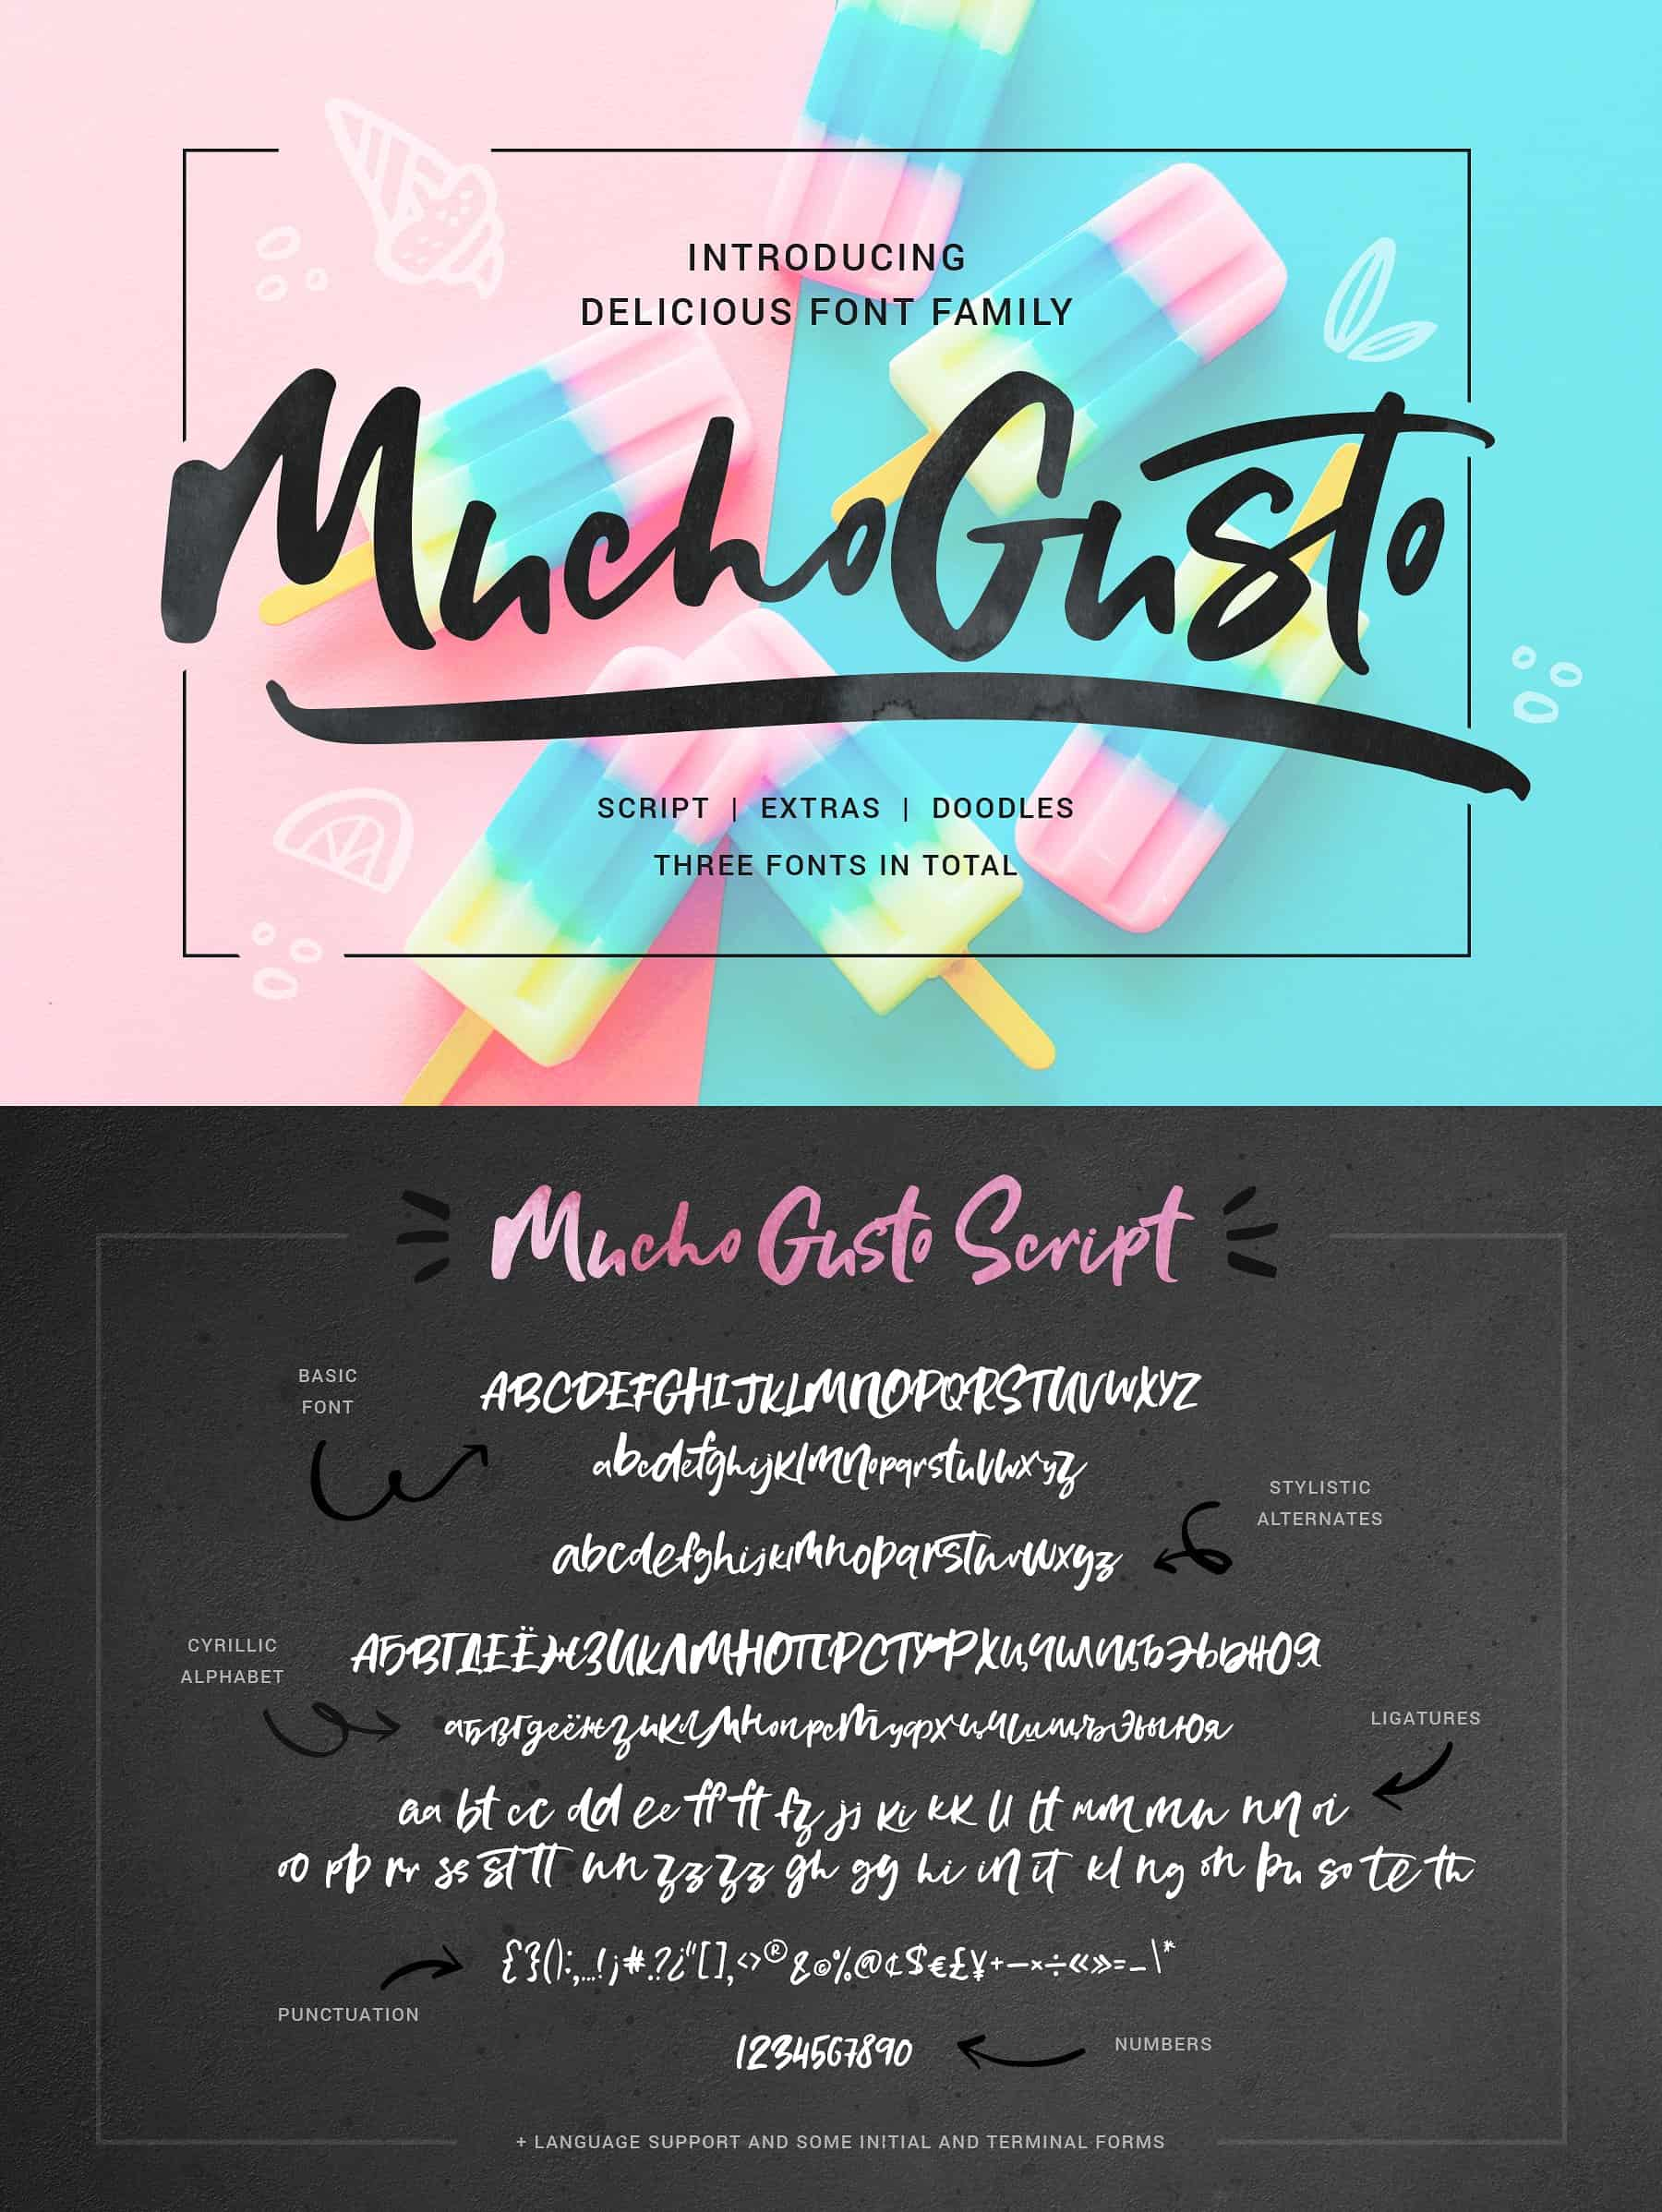 Mucho Gusto Family Font Free Download